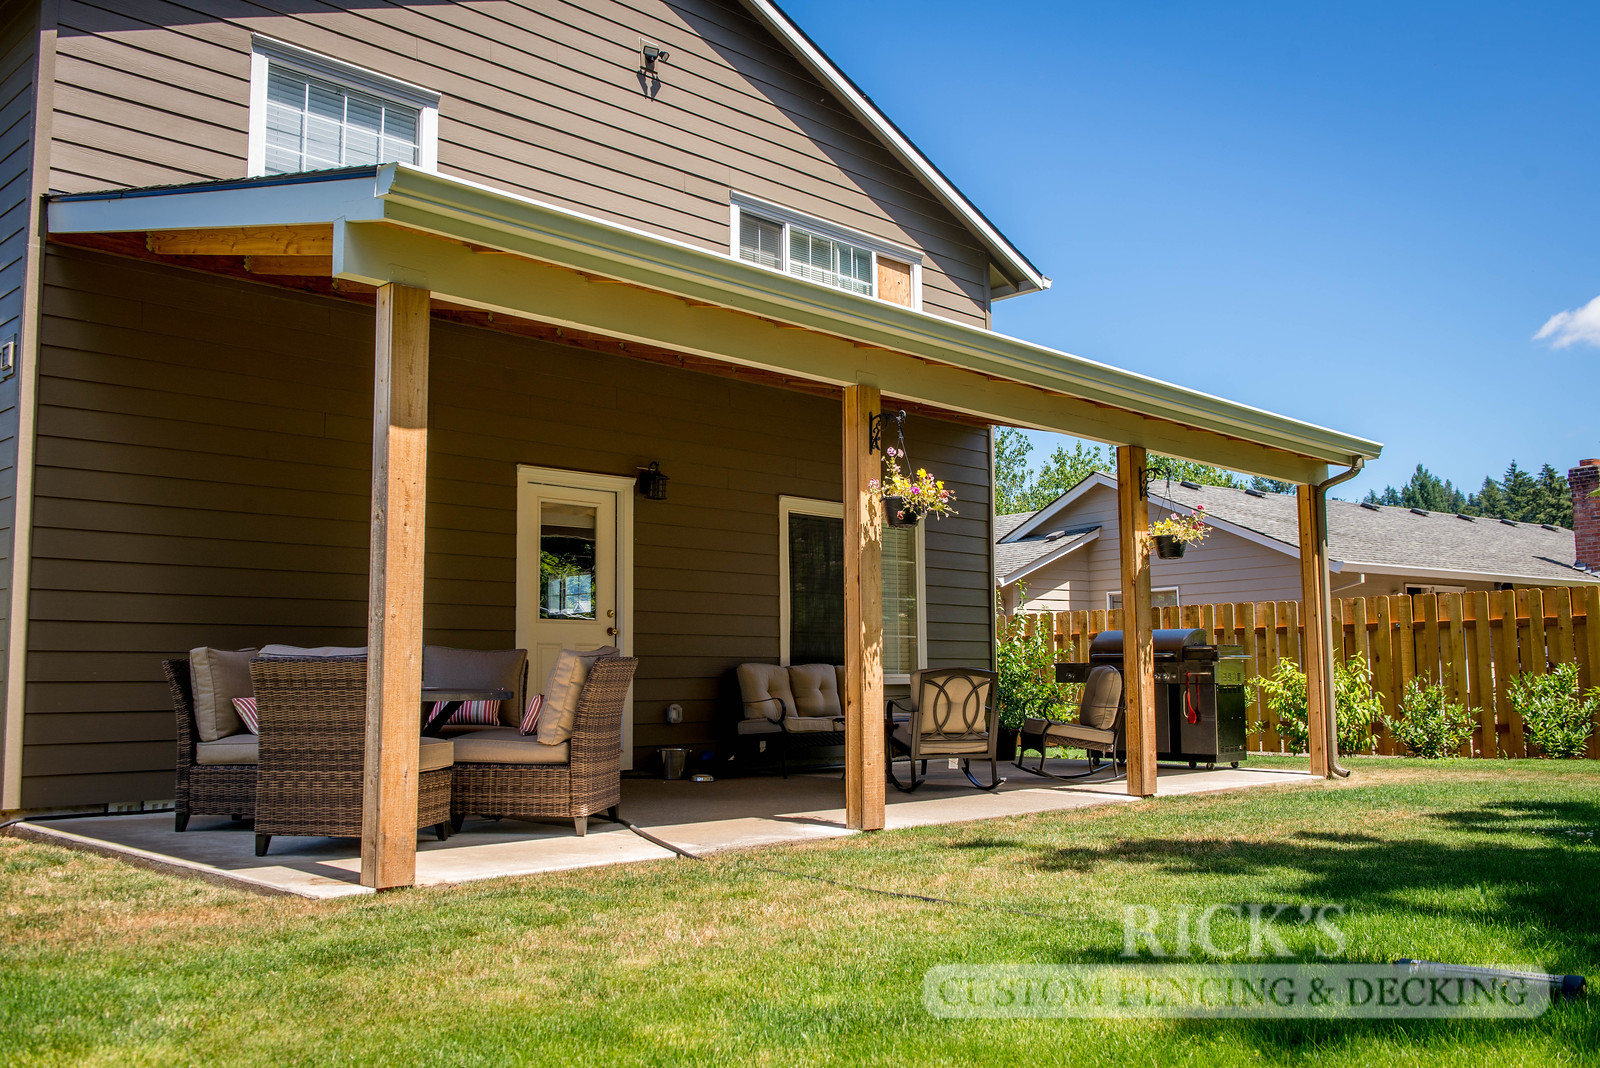 5104 - Wood-Framed Patio Cover